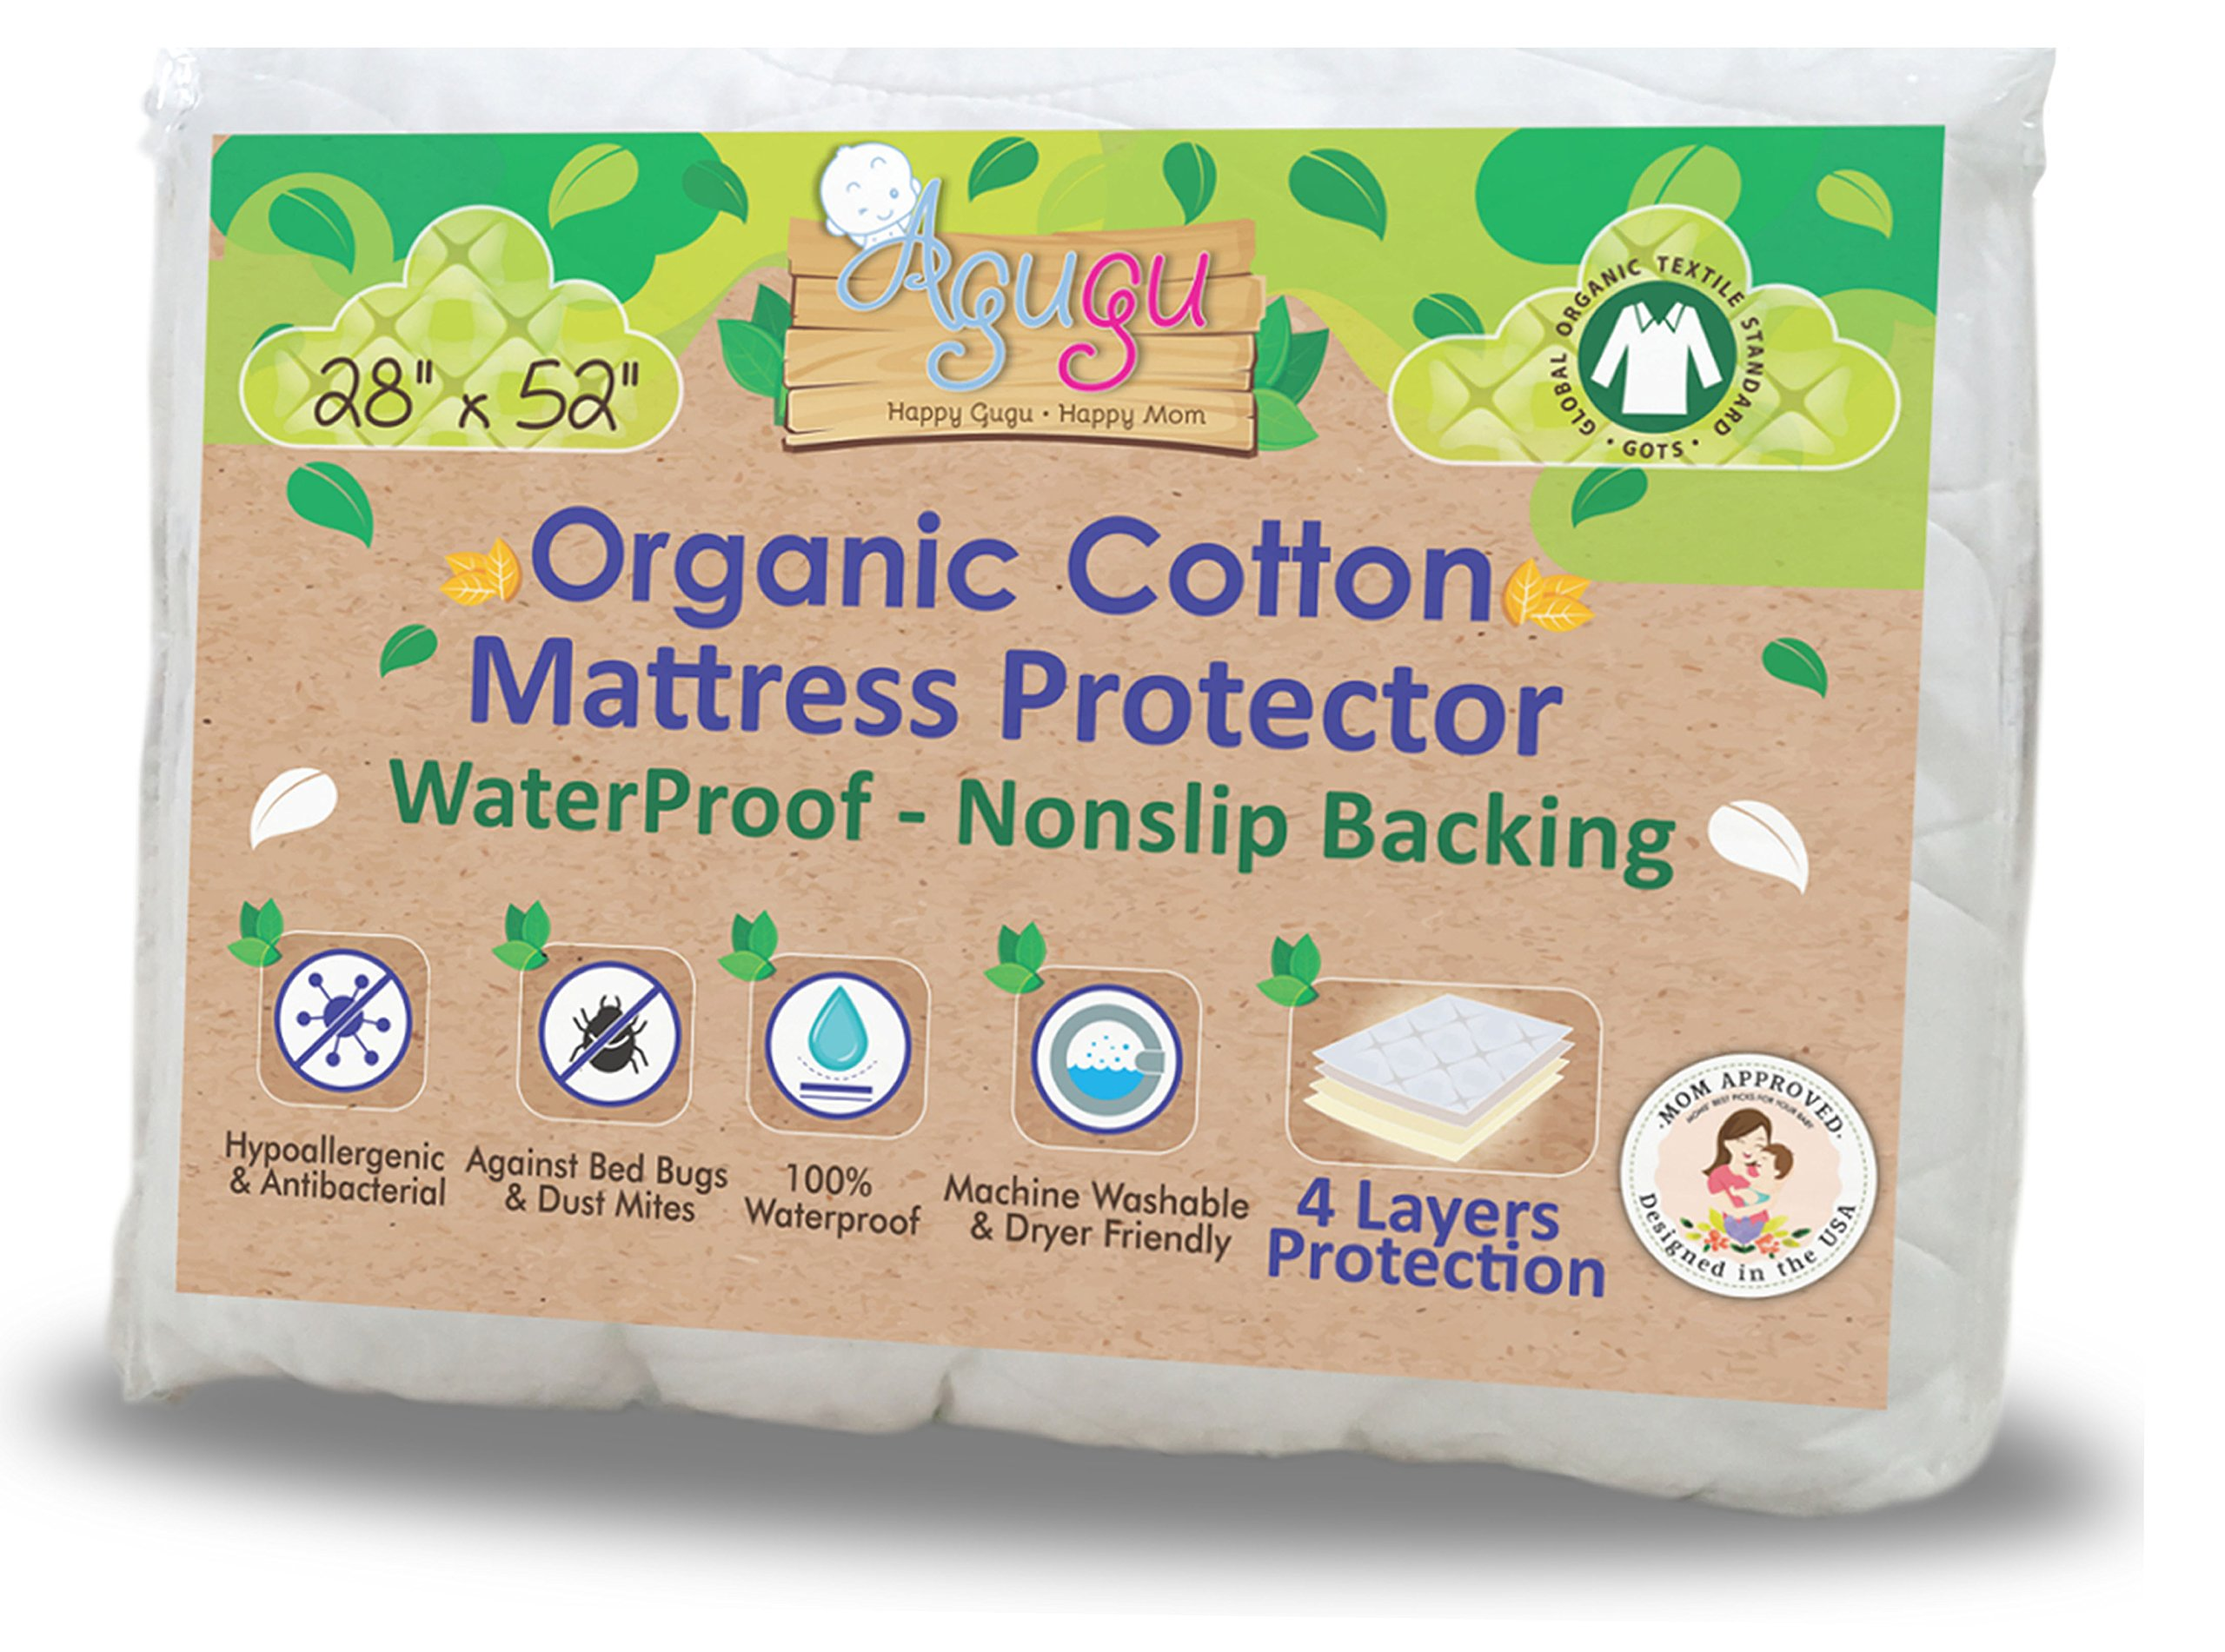 Agugu Certified Organic Cotton Crib Mattress Protector - Absolute No Liquid Penetration Baby Bed Cover | Ultra Soft on Toddler & Baby Skin | Non-Toxic, Fast Cleanup, No-Slip Backing - 28''x52''x8''